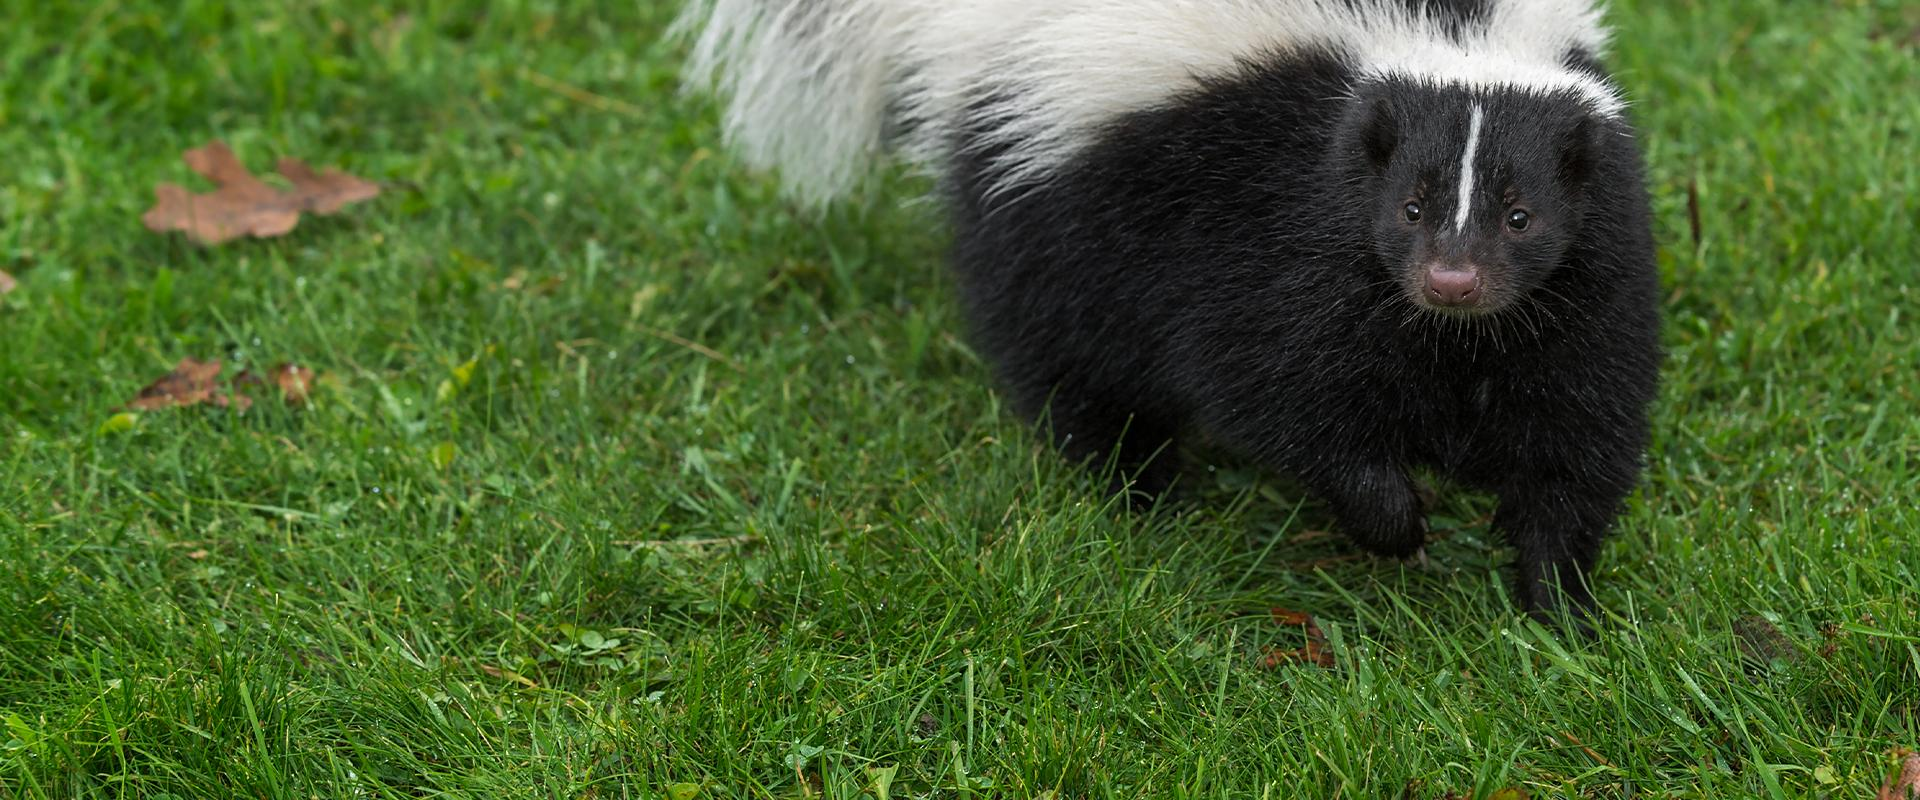 a skunk in the grass in plano texas